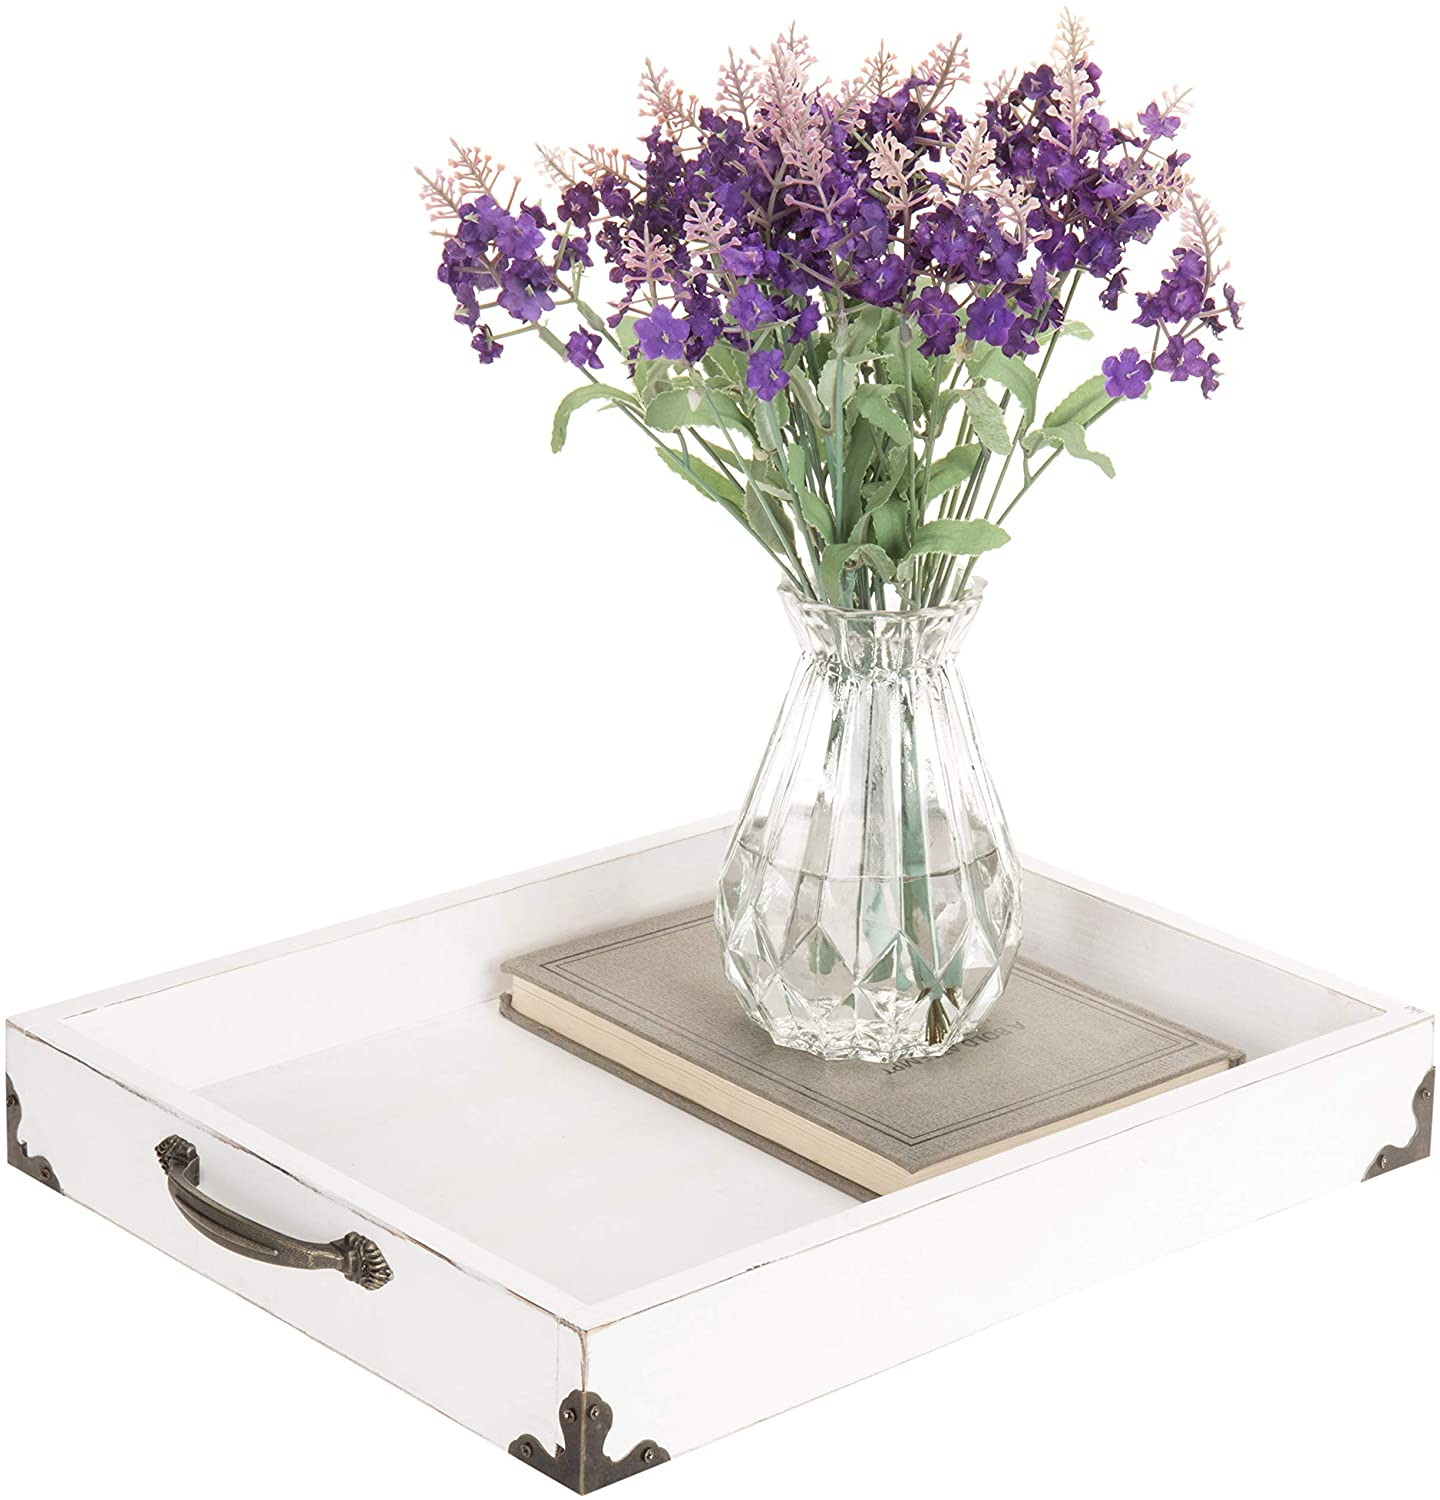 MyGift Vintage White Wood Decorative Vanity Tray with Antique Handles